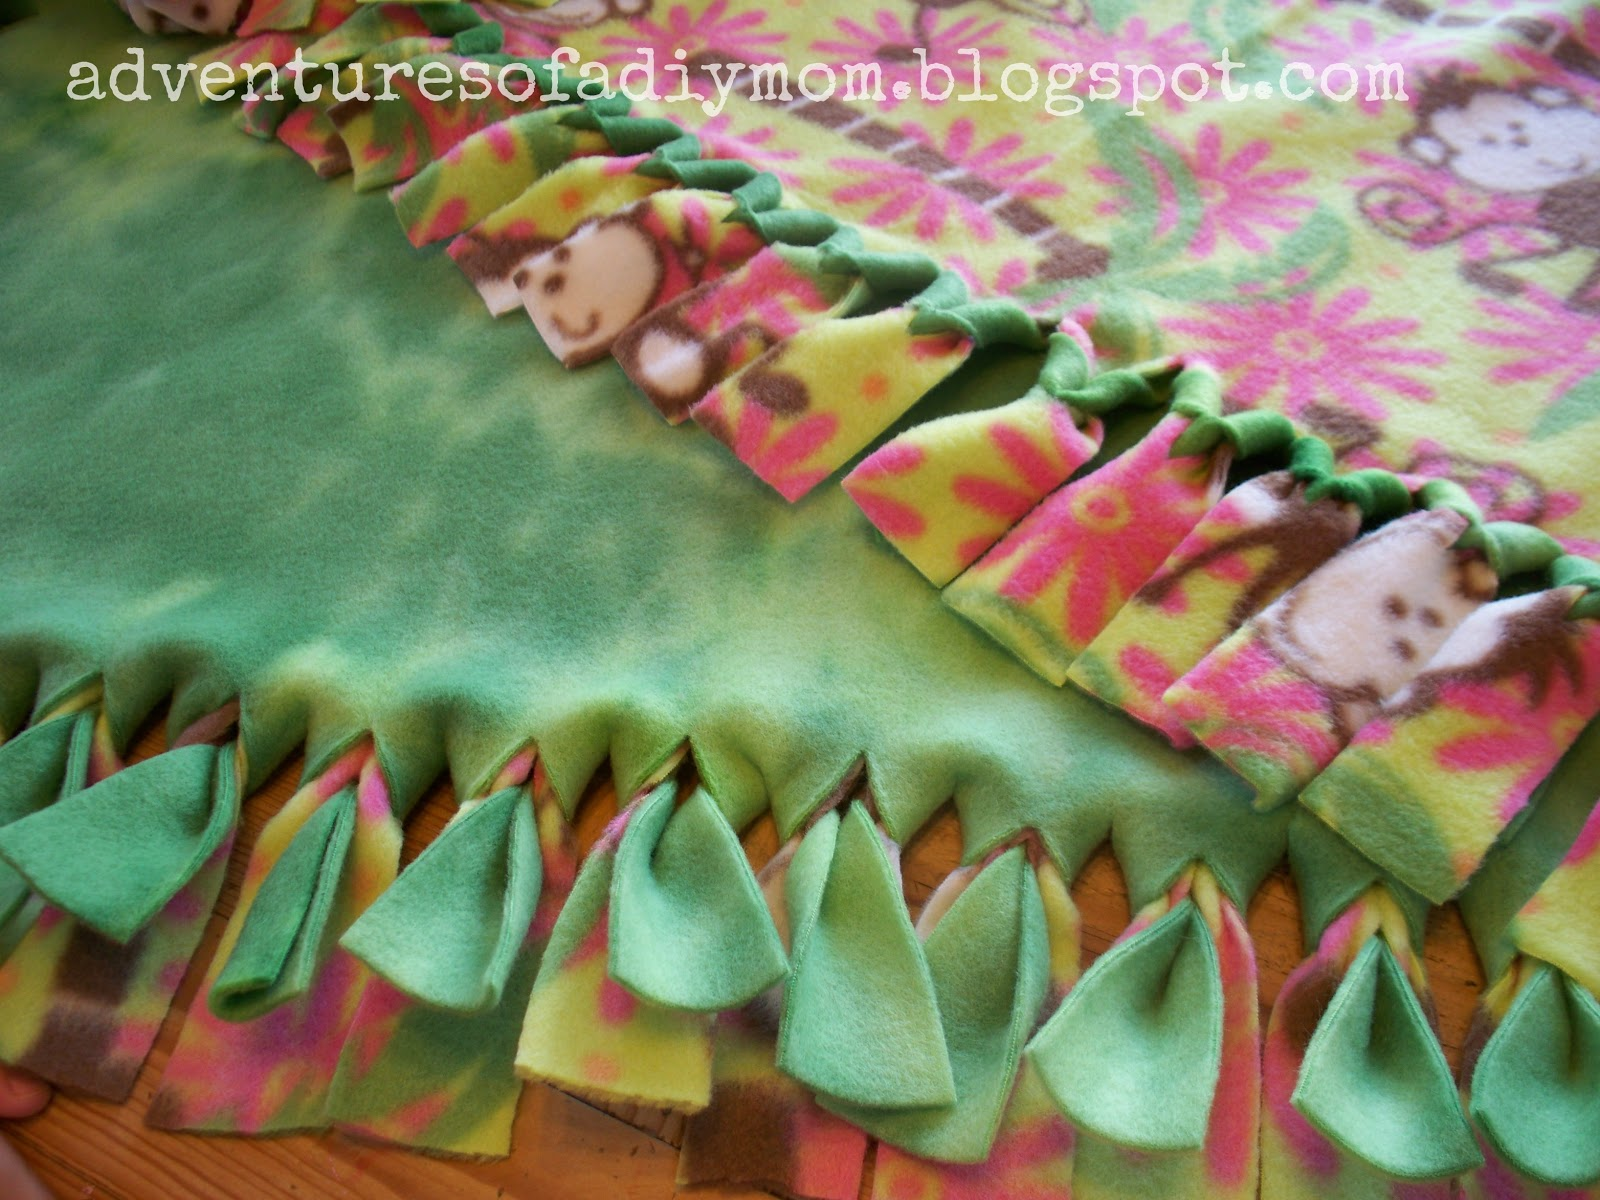 How To Make A No Sew Fleece Blanket Adventures Of A Diy Mom